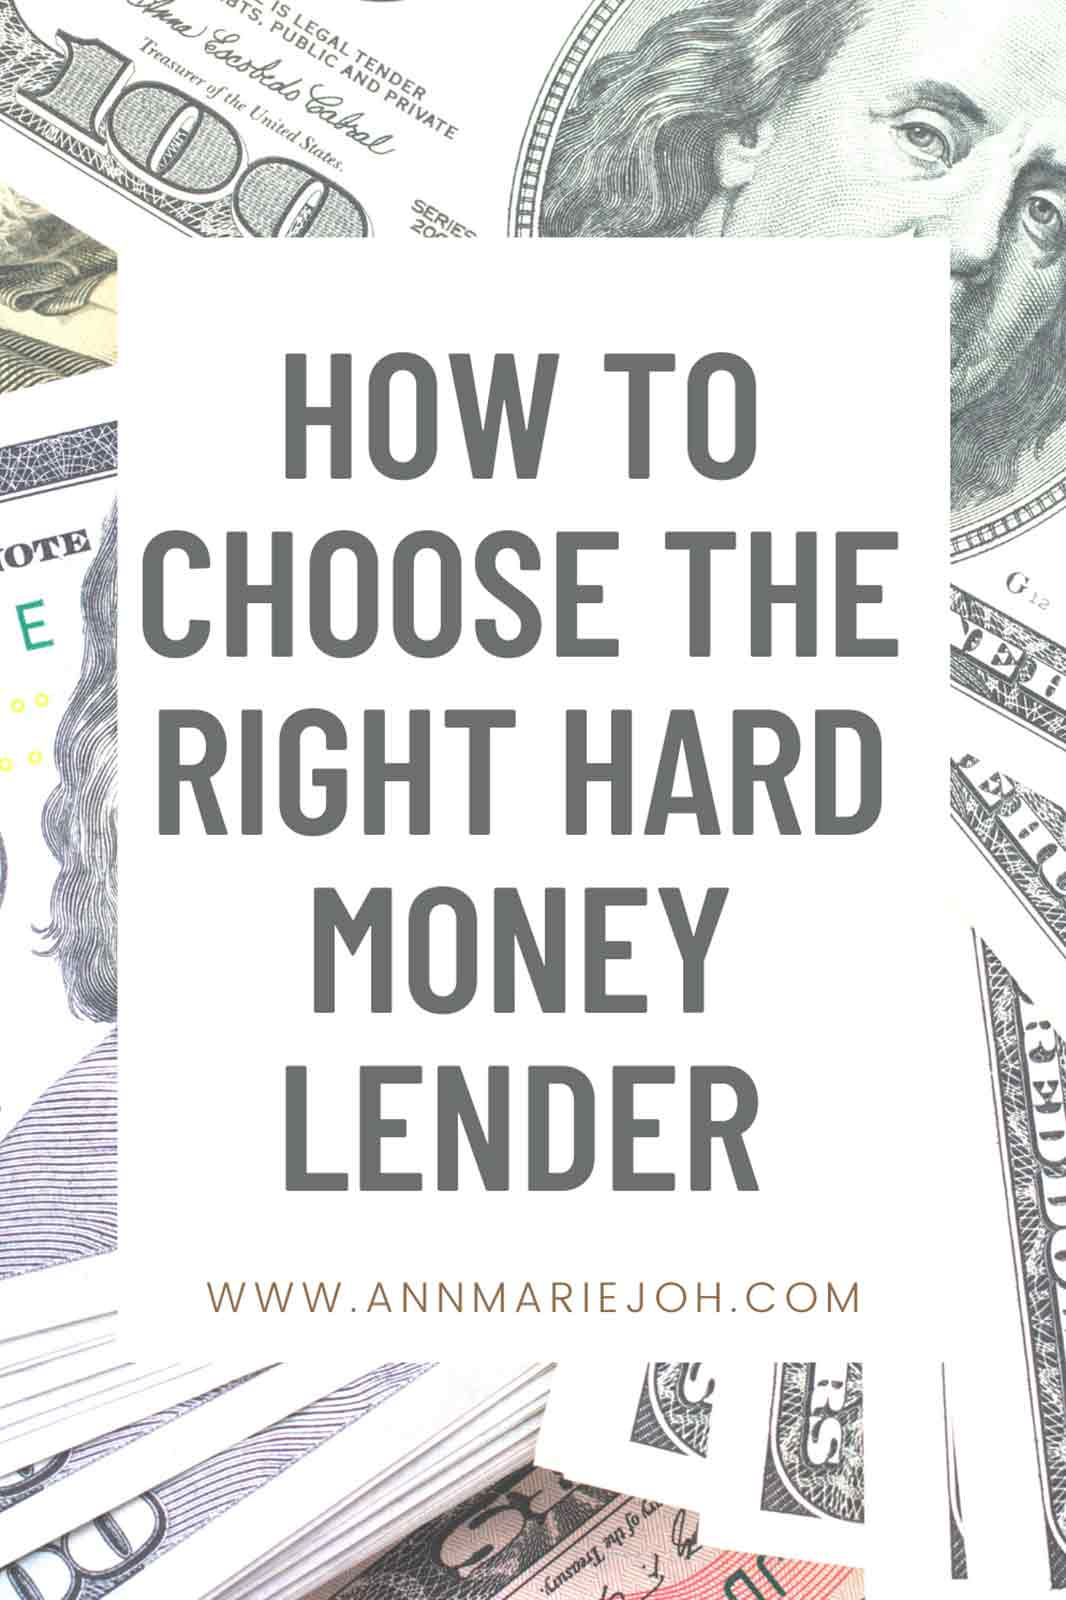 How to Choose the Right Hard Money Lender